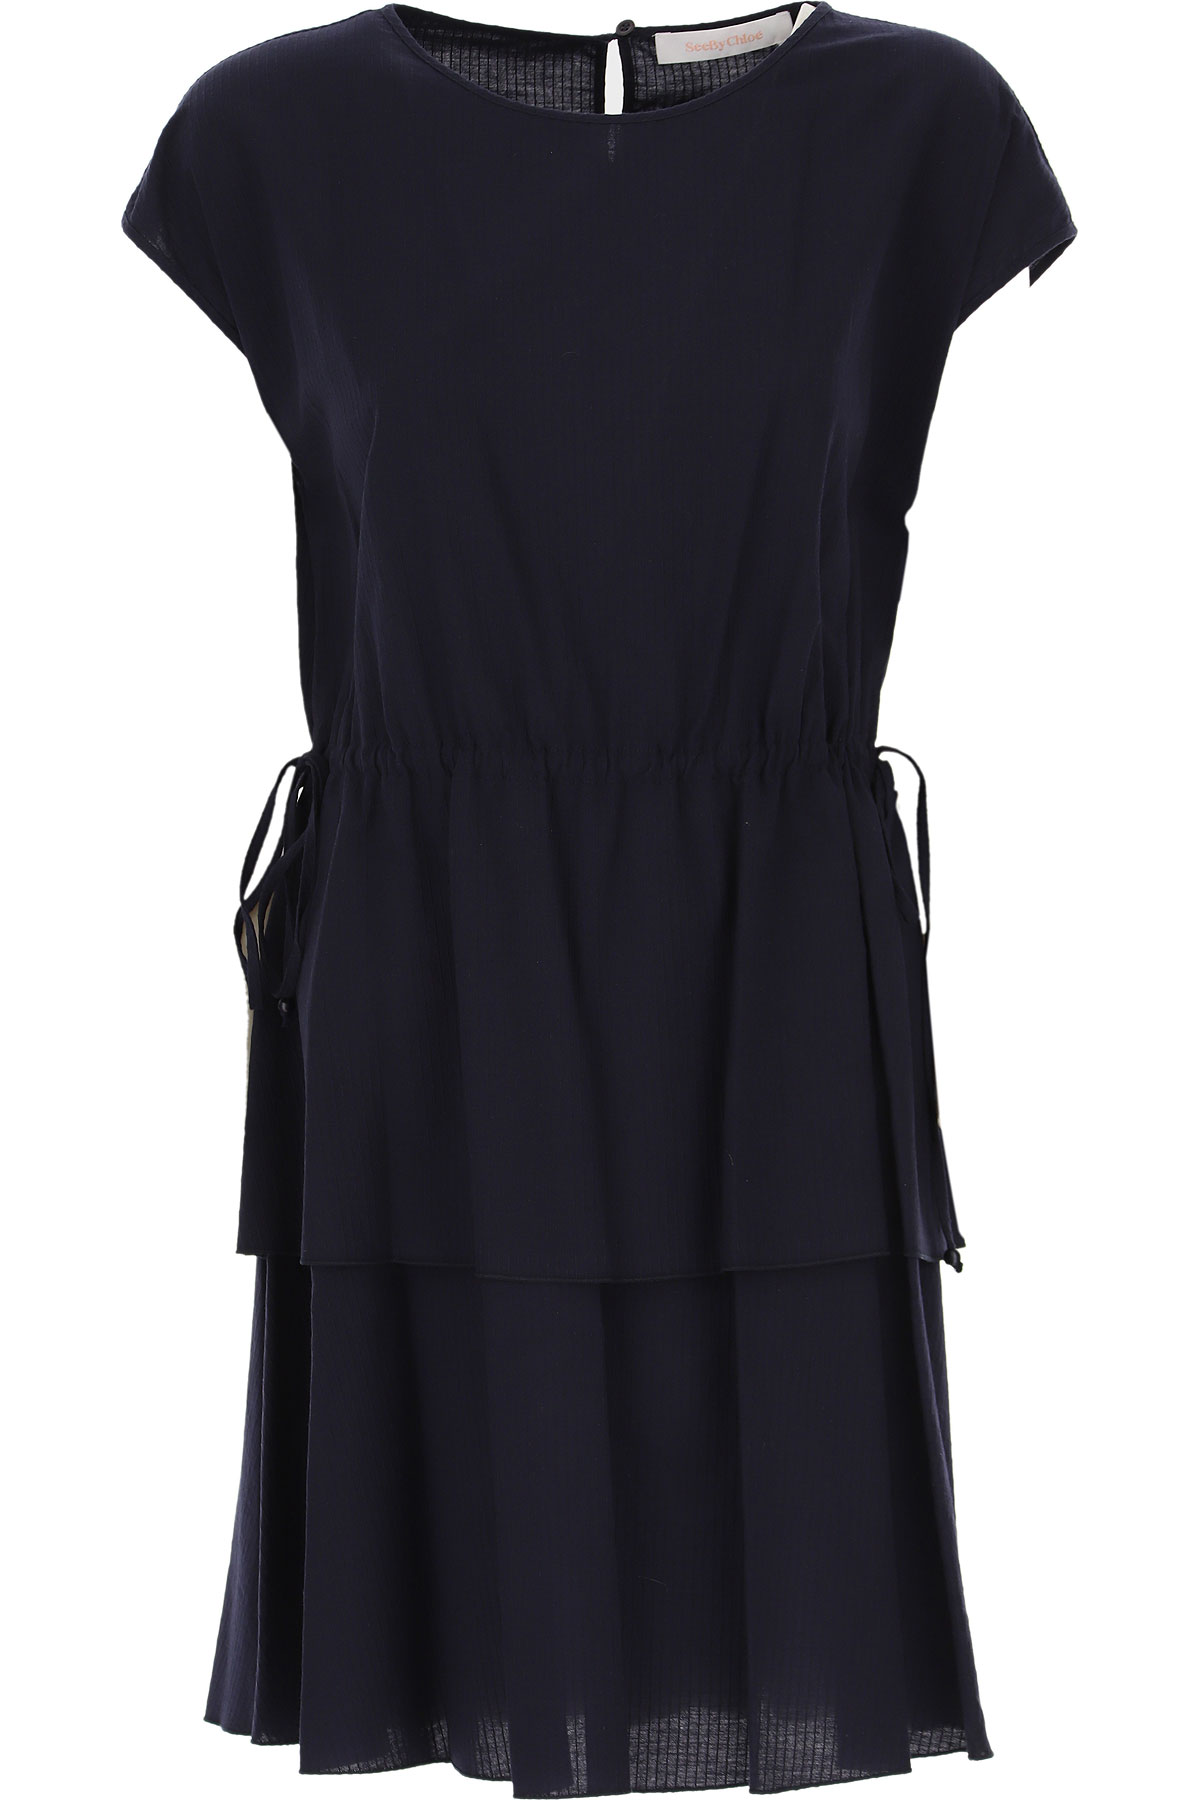 See By Chloe Dress for Women, Evening Cocktail Party, Ink Navy, Cotton, 2019, 2 4